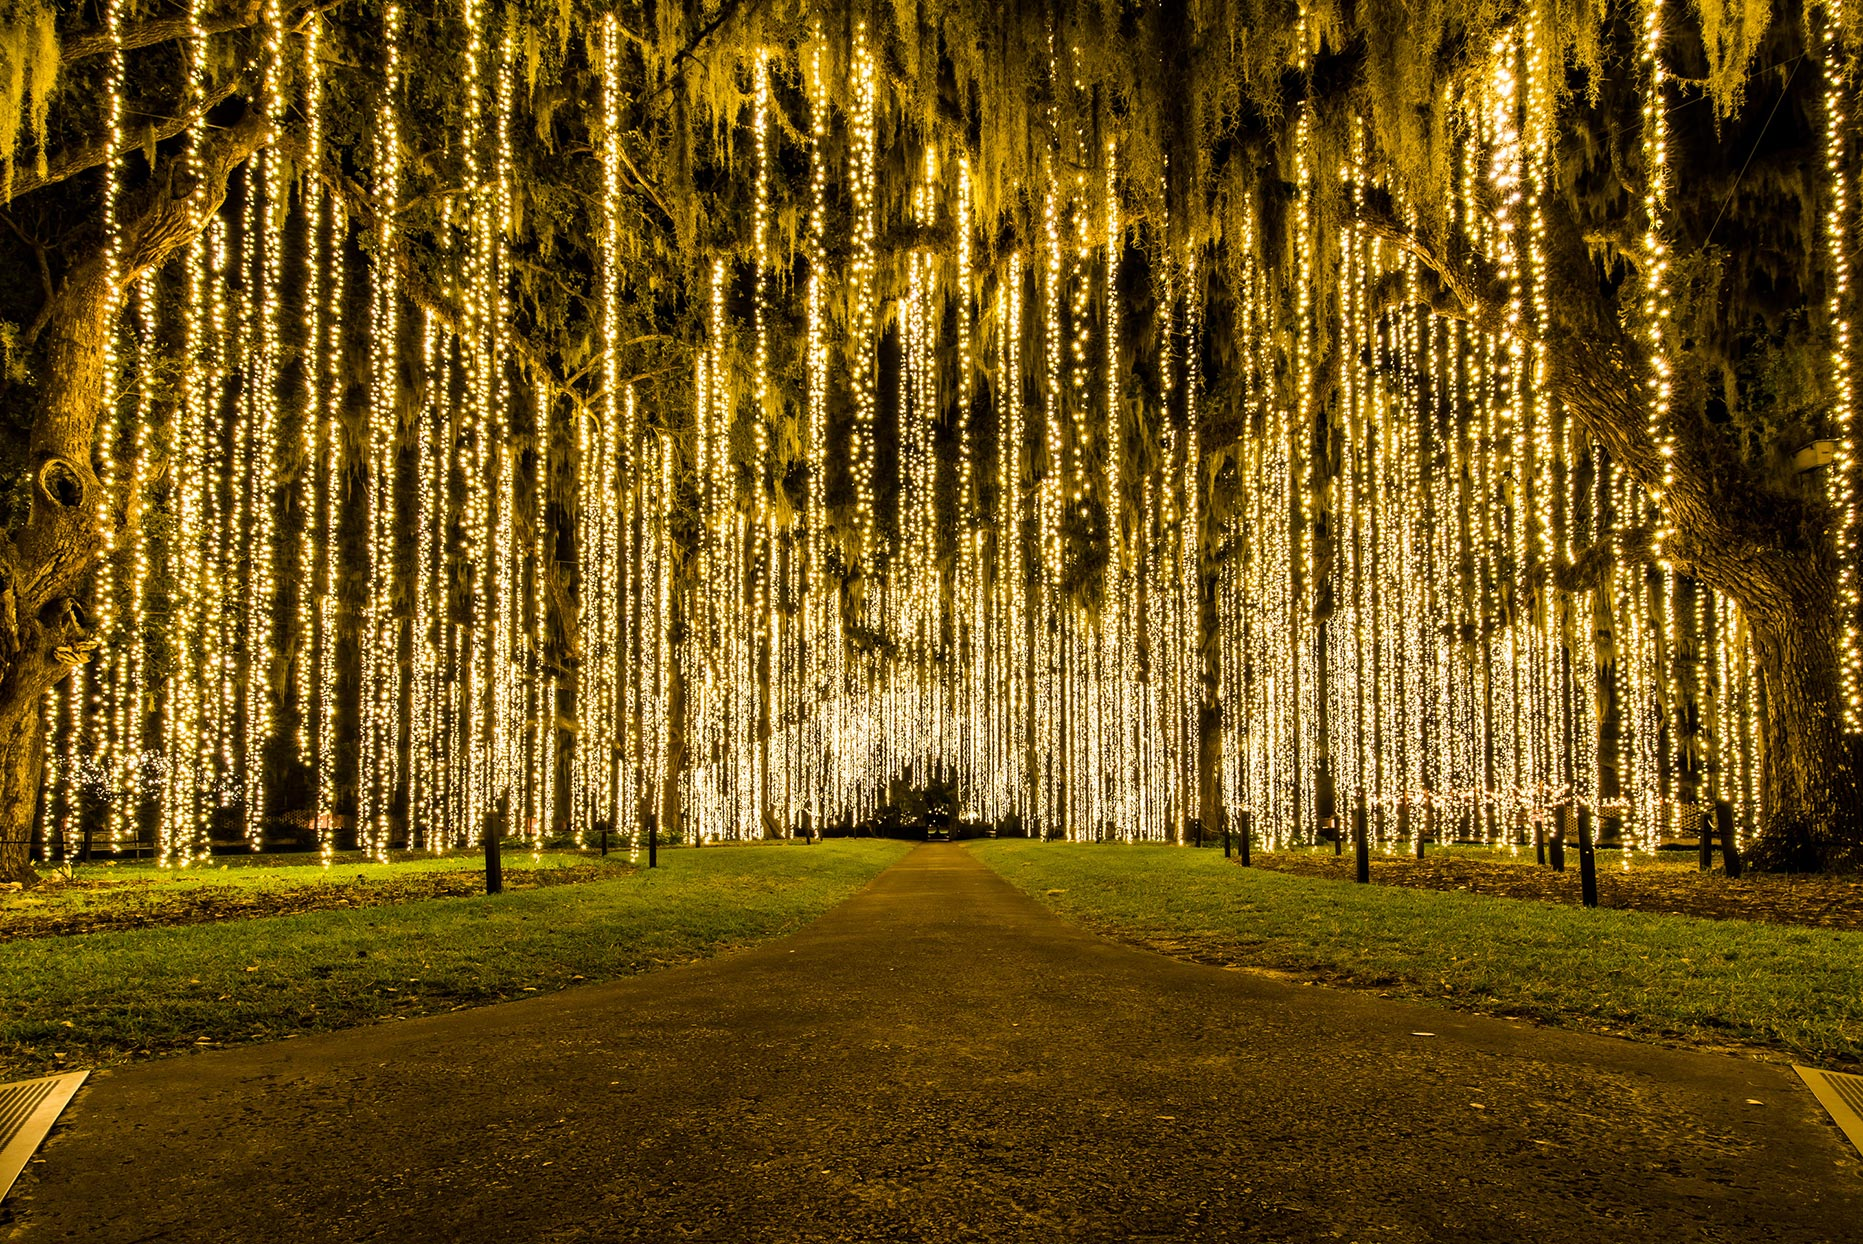 Trees with hanging Christmas lights at Brookgreen Gardens